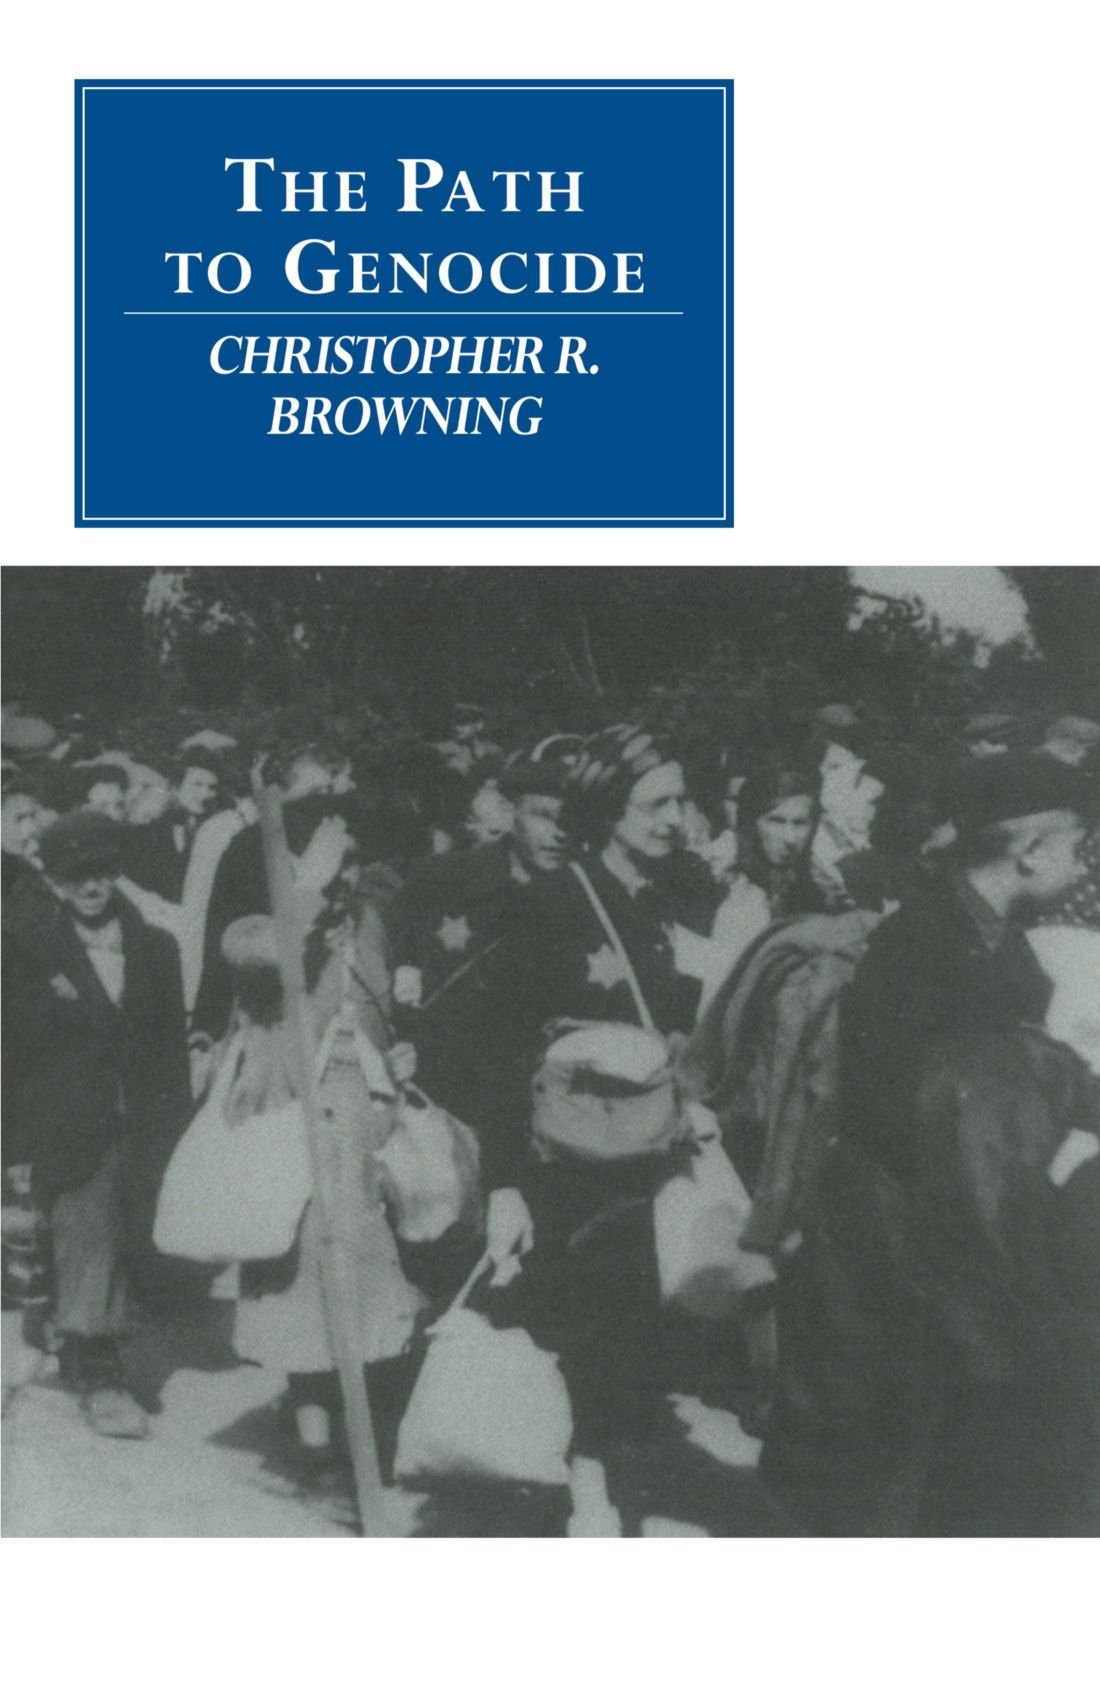 the path to genocide essays on launching the final solution the path to genocide essays on launching the final solution canto original series co uk christopher r browning 9780521558785 books